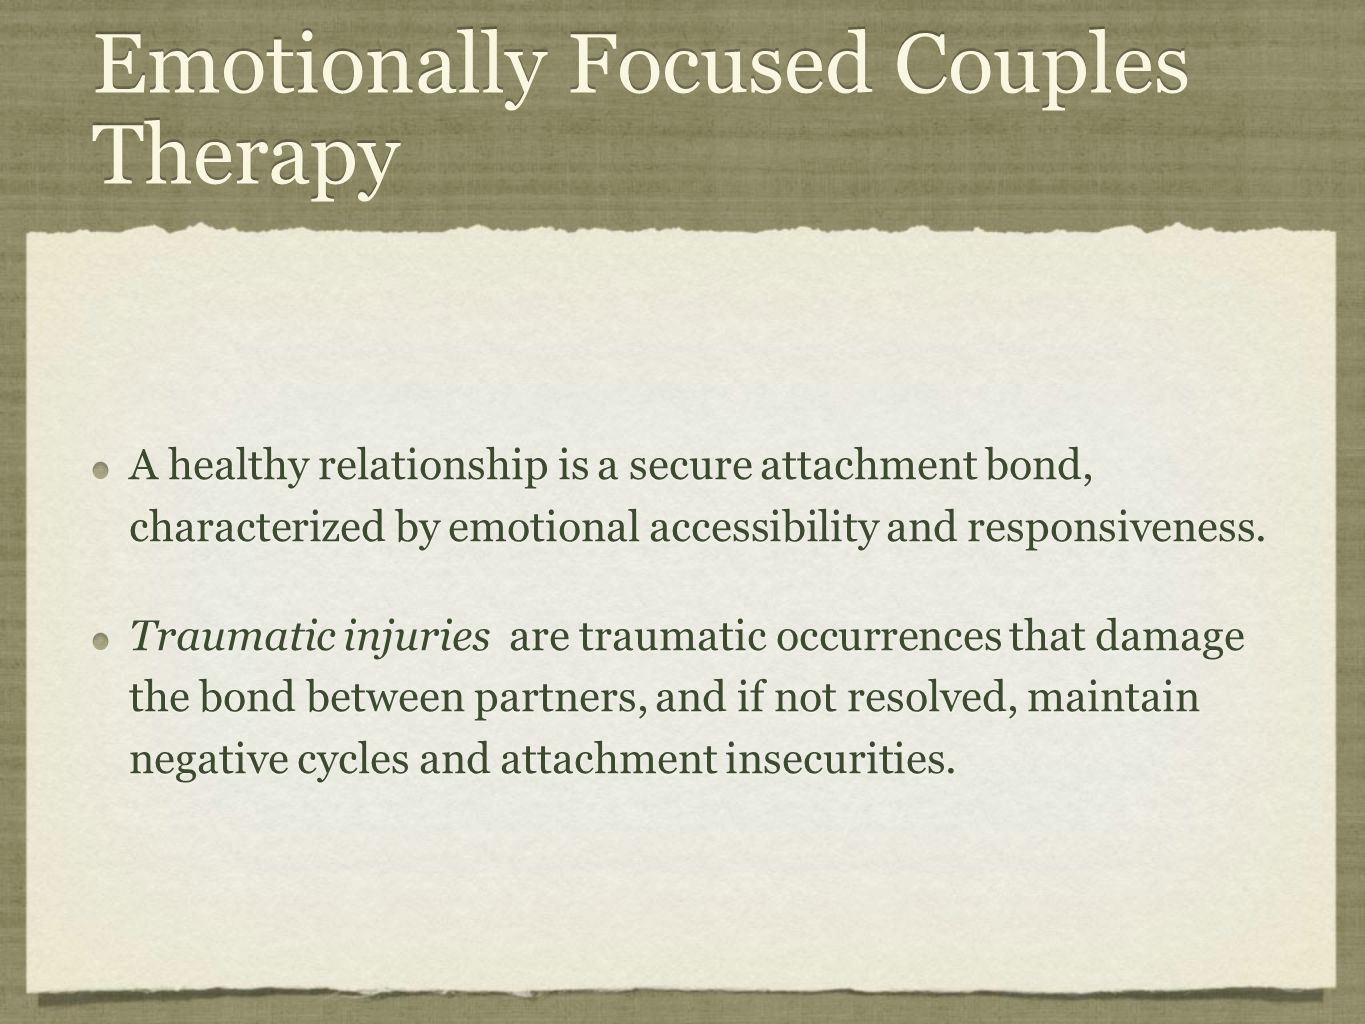 Emotionally Focused Couples Therapy A healthy relationship is a secure attachment bond, characterized by emotional accessibility and responsiveness.